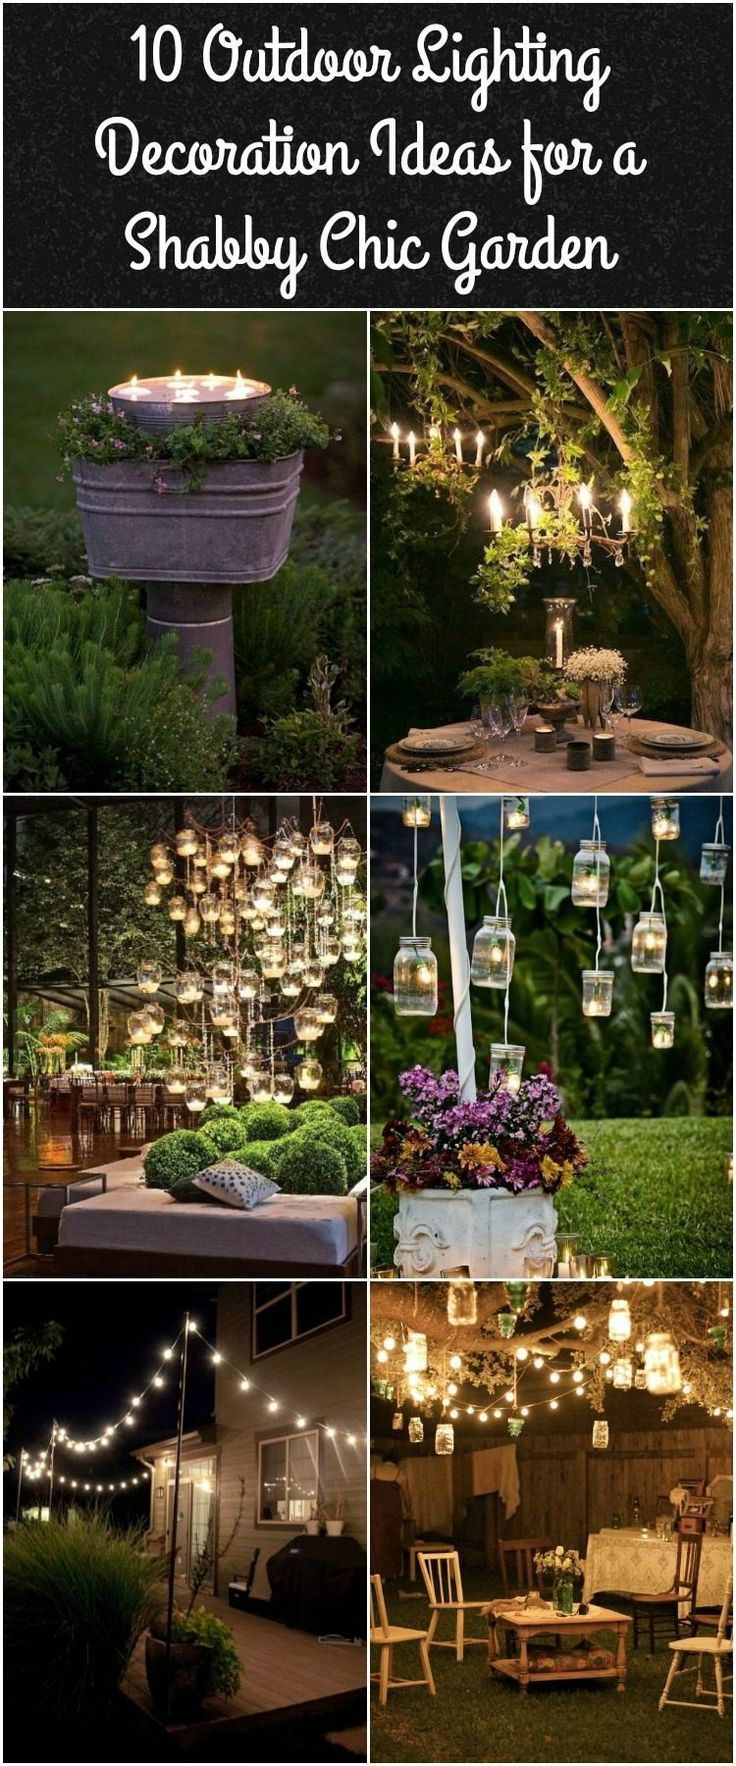 10 Outdoor Lighting Decoration Ideas for a Shabby Chic Garden. #6 is Lovely Outd...